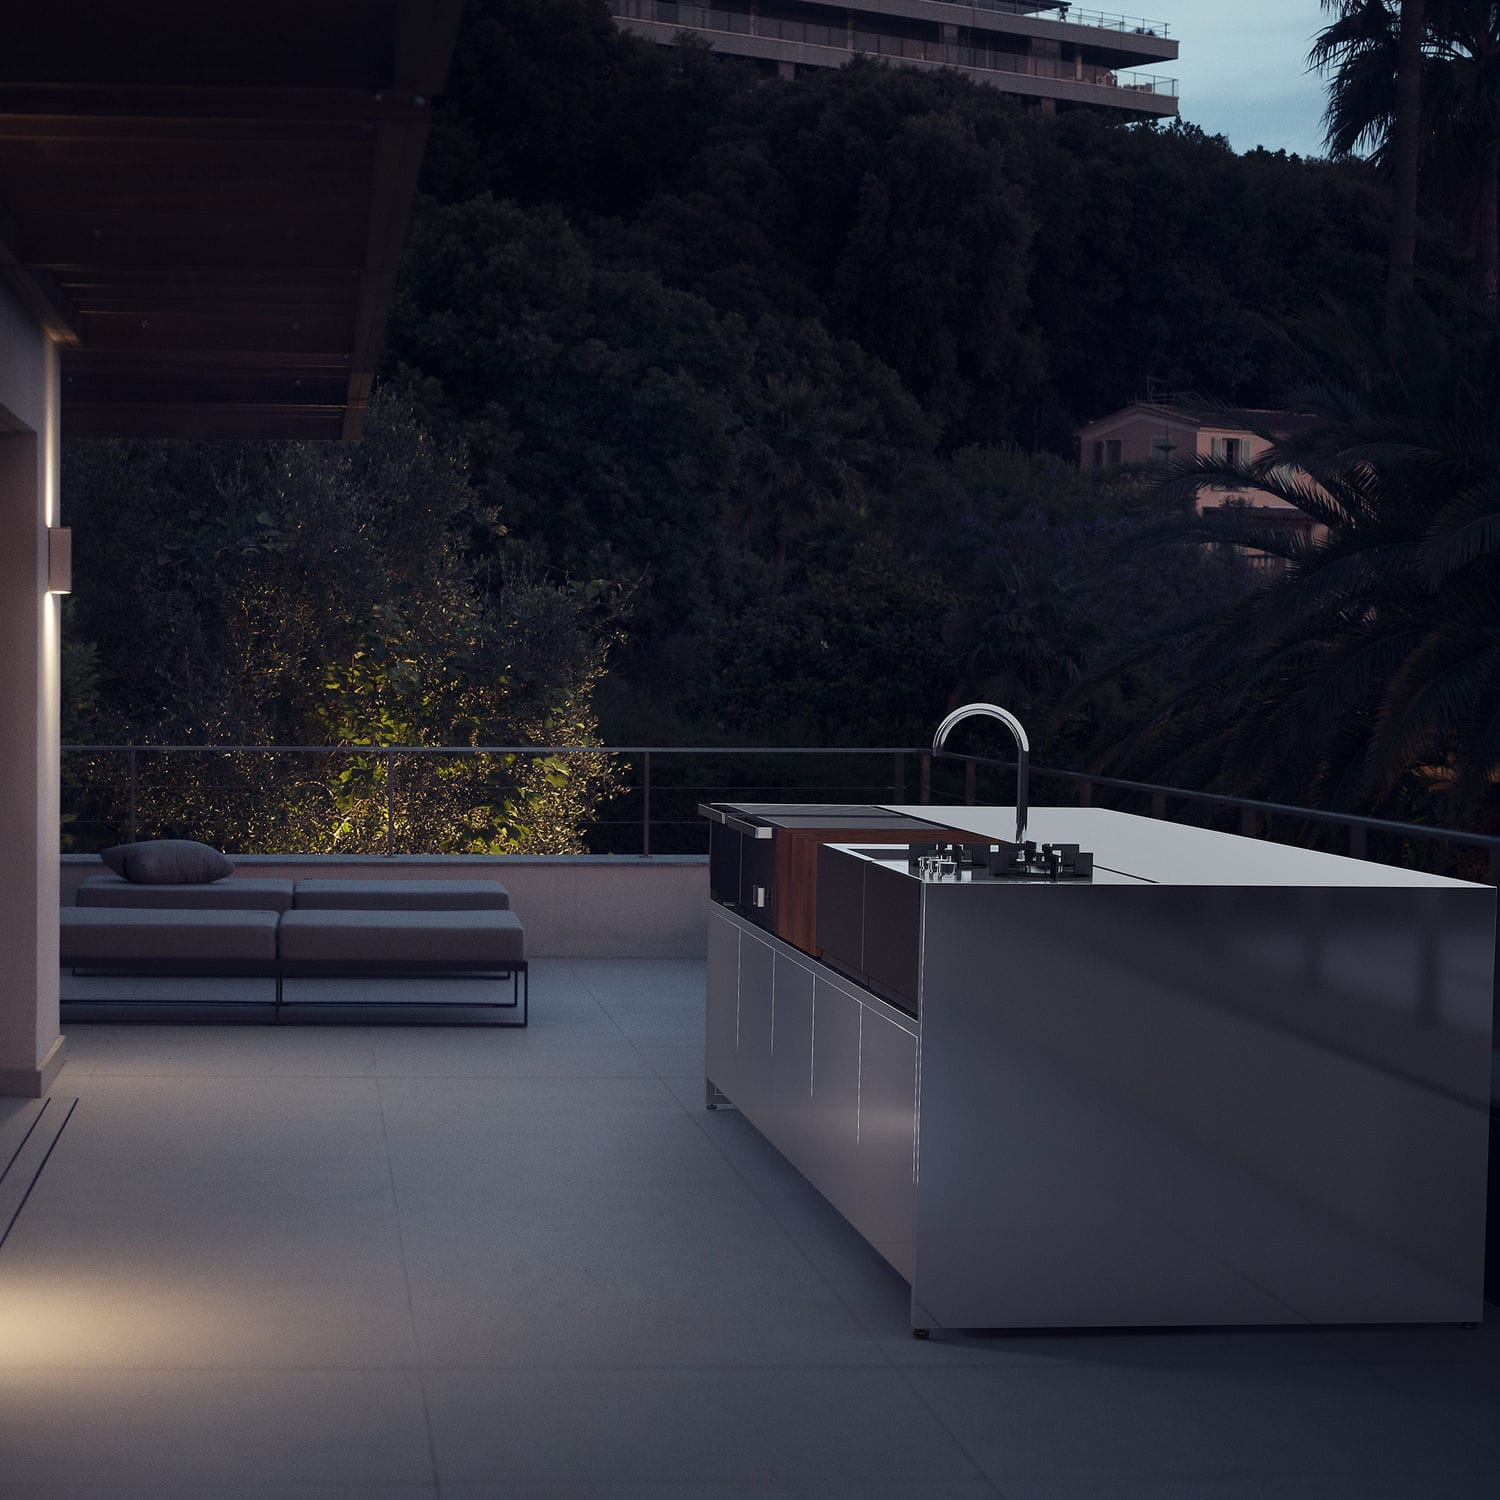 Home Kitchen Island By Broberg Ridderstrale Roshults